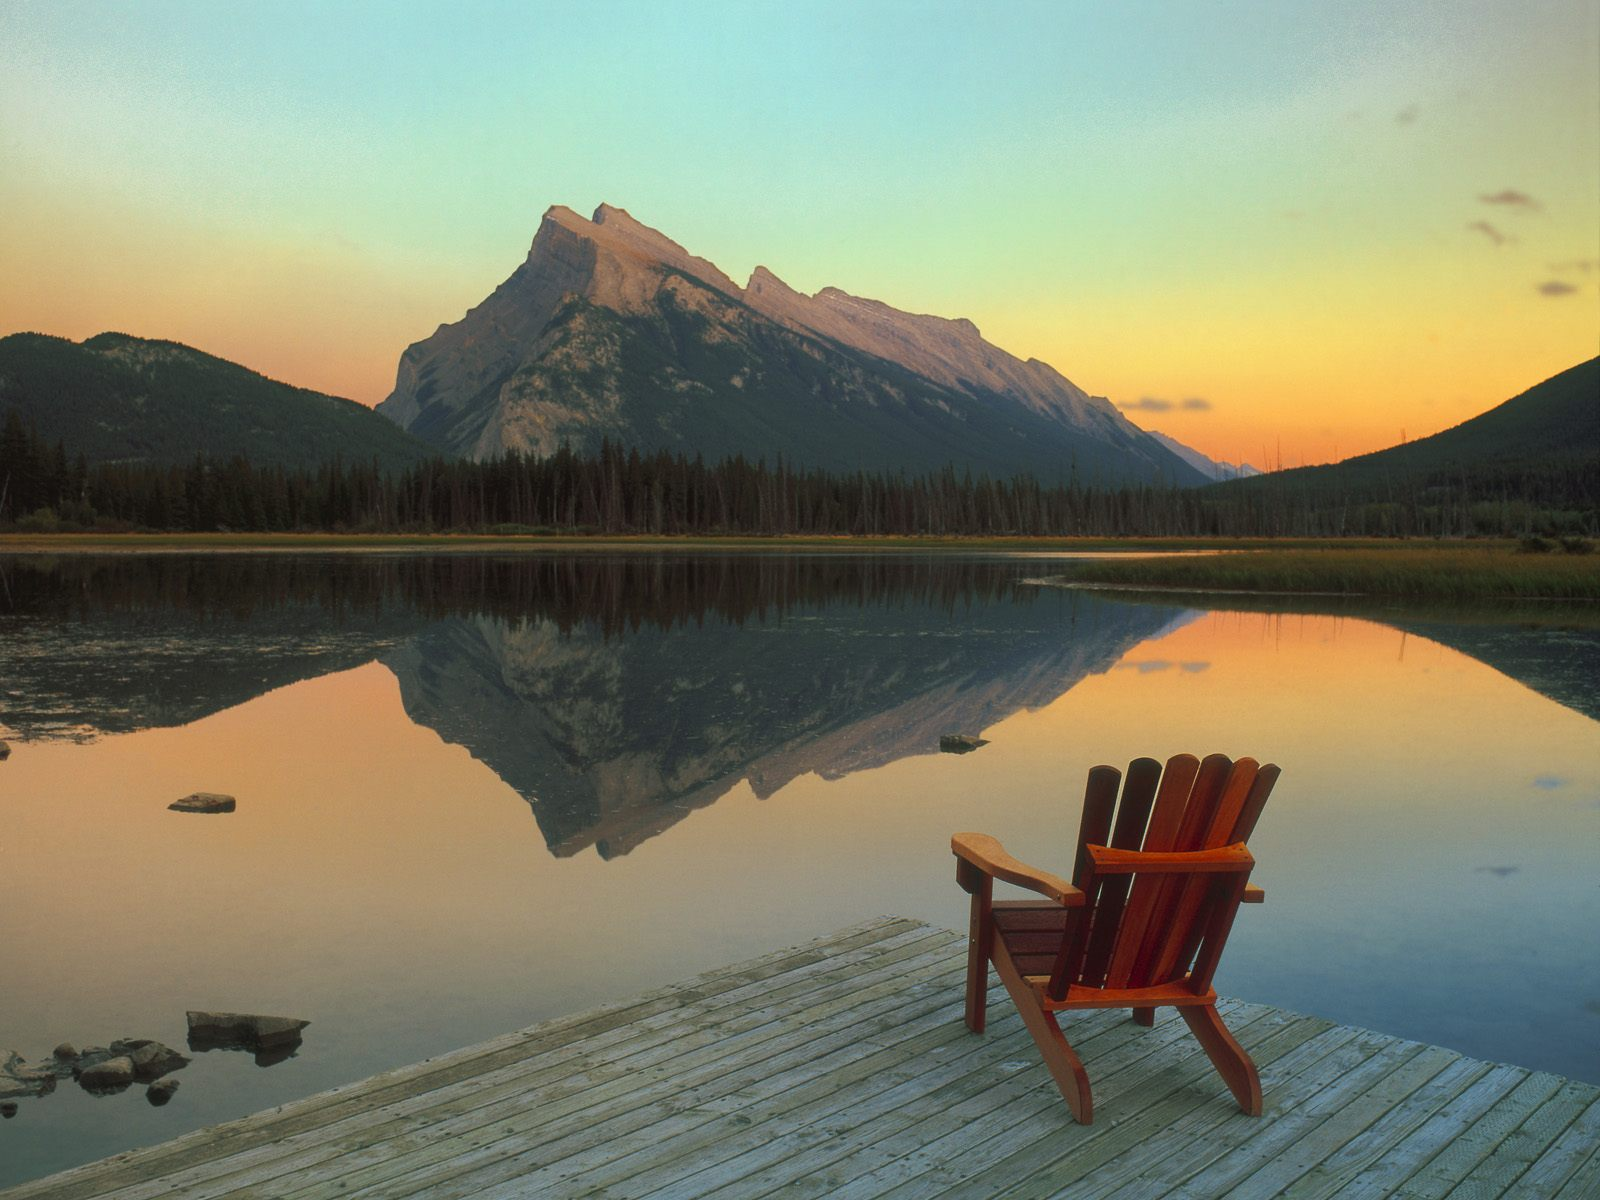 Vermillion Lake Escape Mount Rundle Reflected Banff National Park Canada